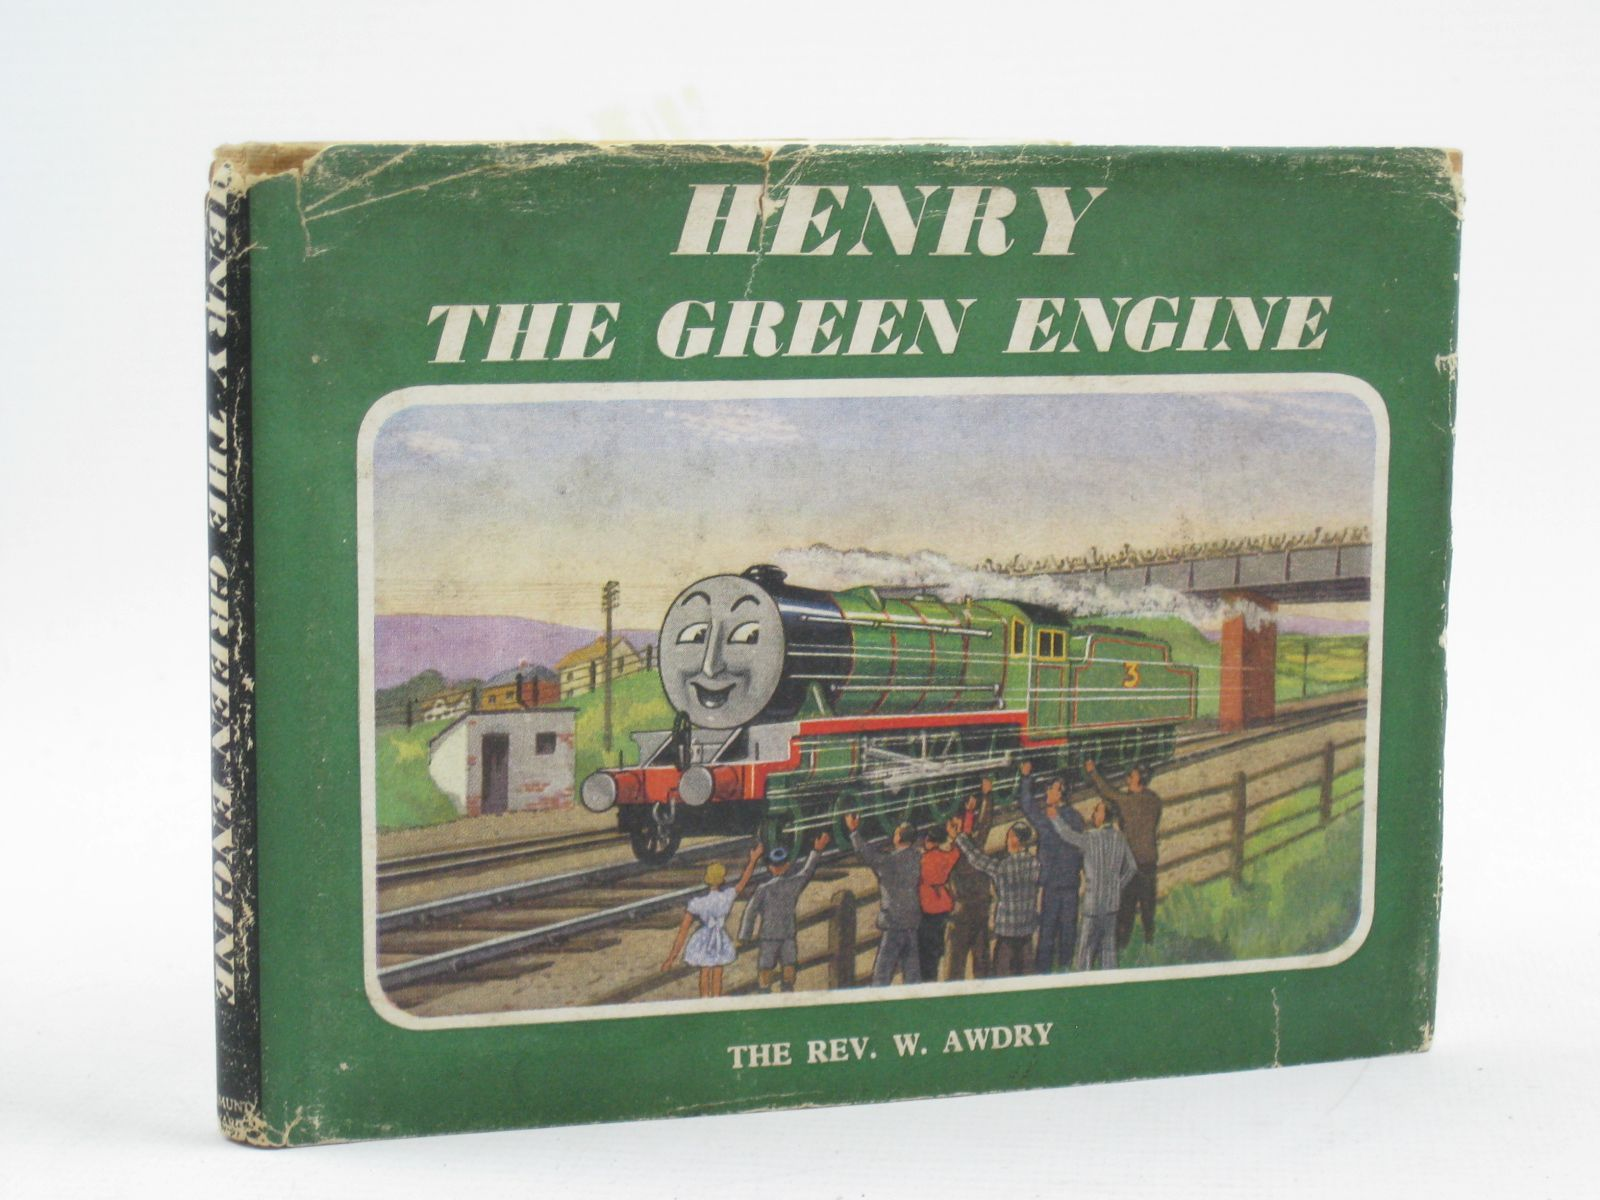 Cover of HENRY THE GREEN ENGINE by Rev. W. Awdry